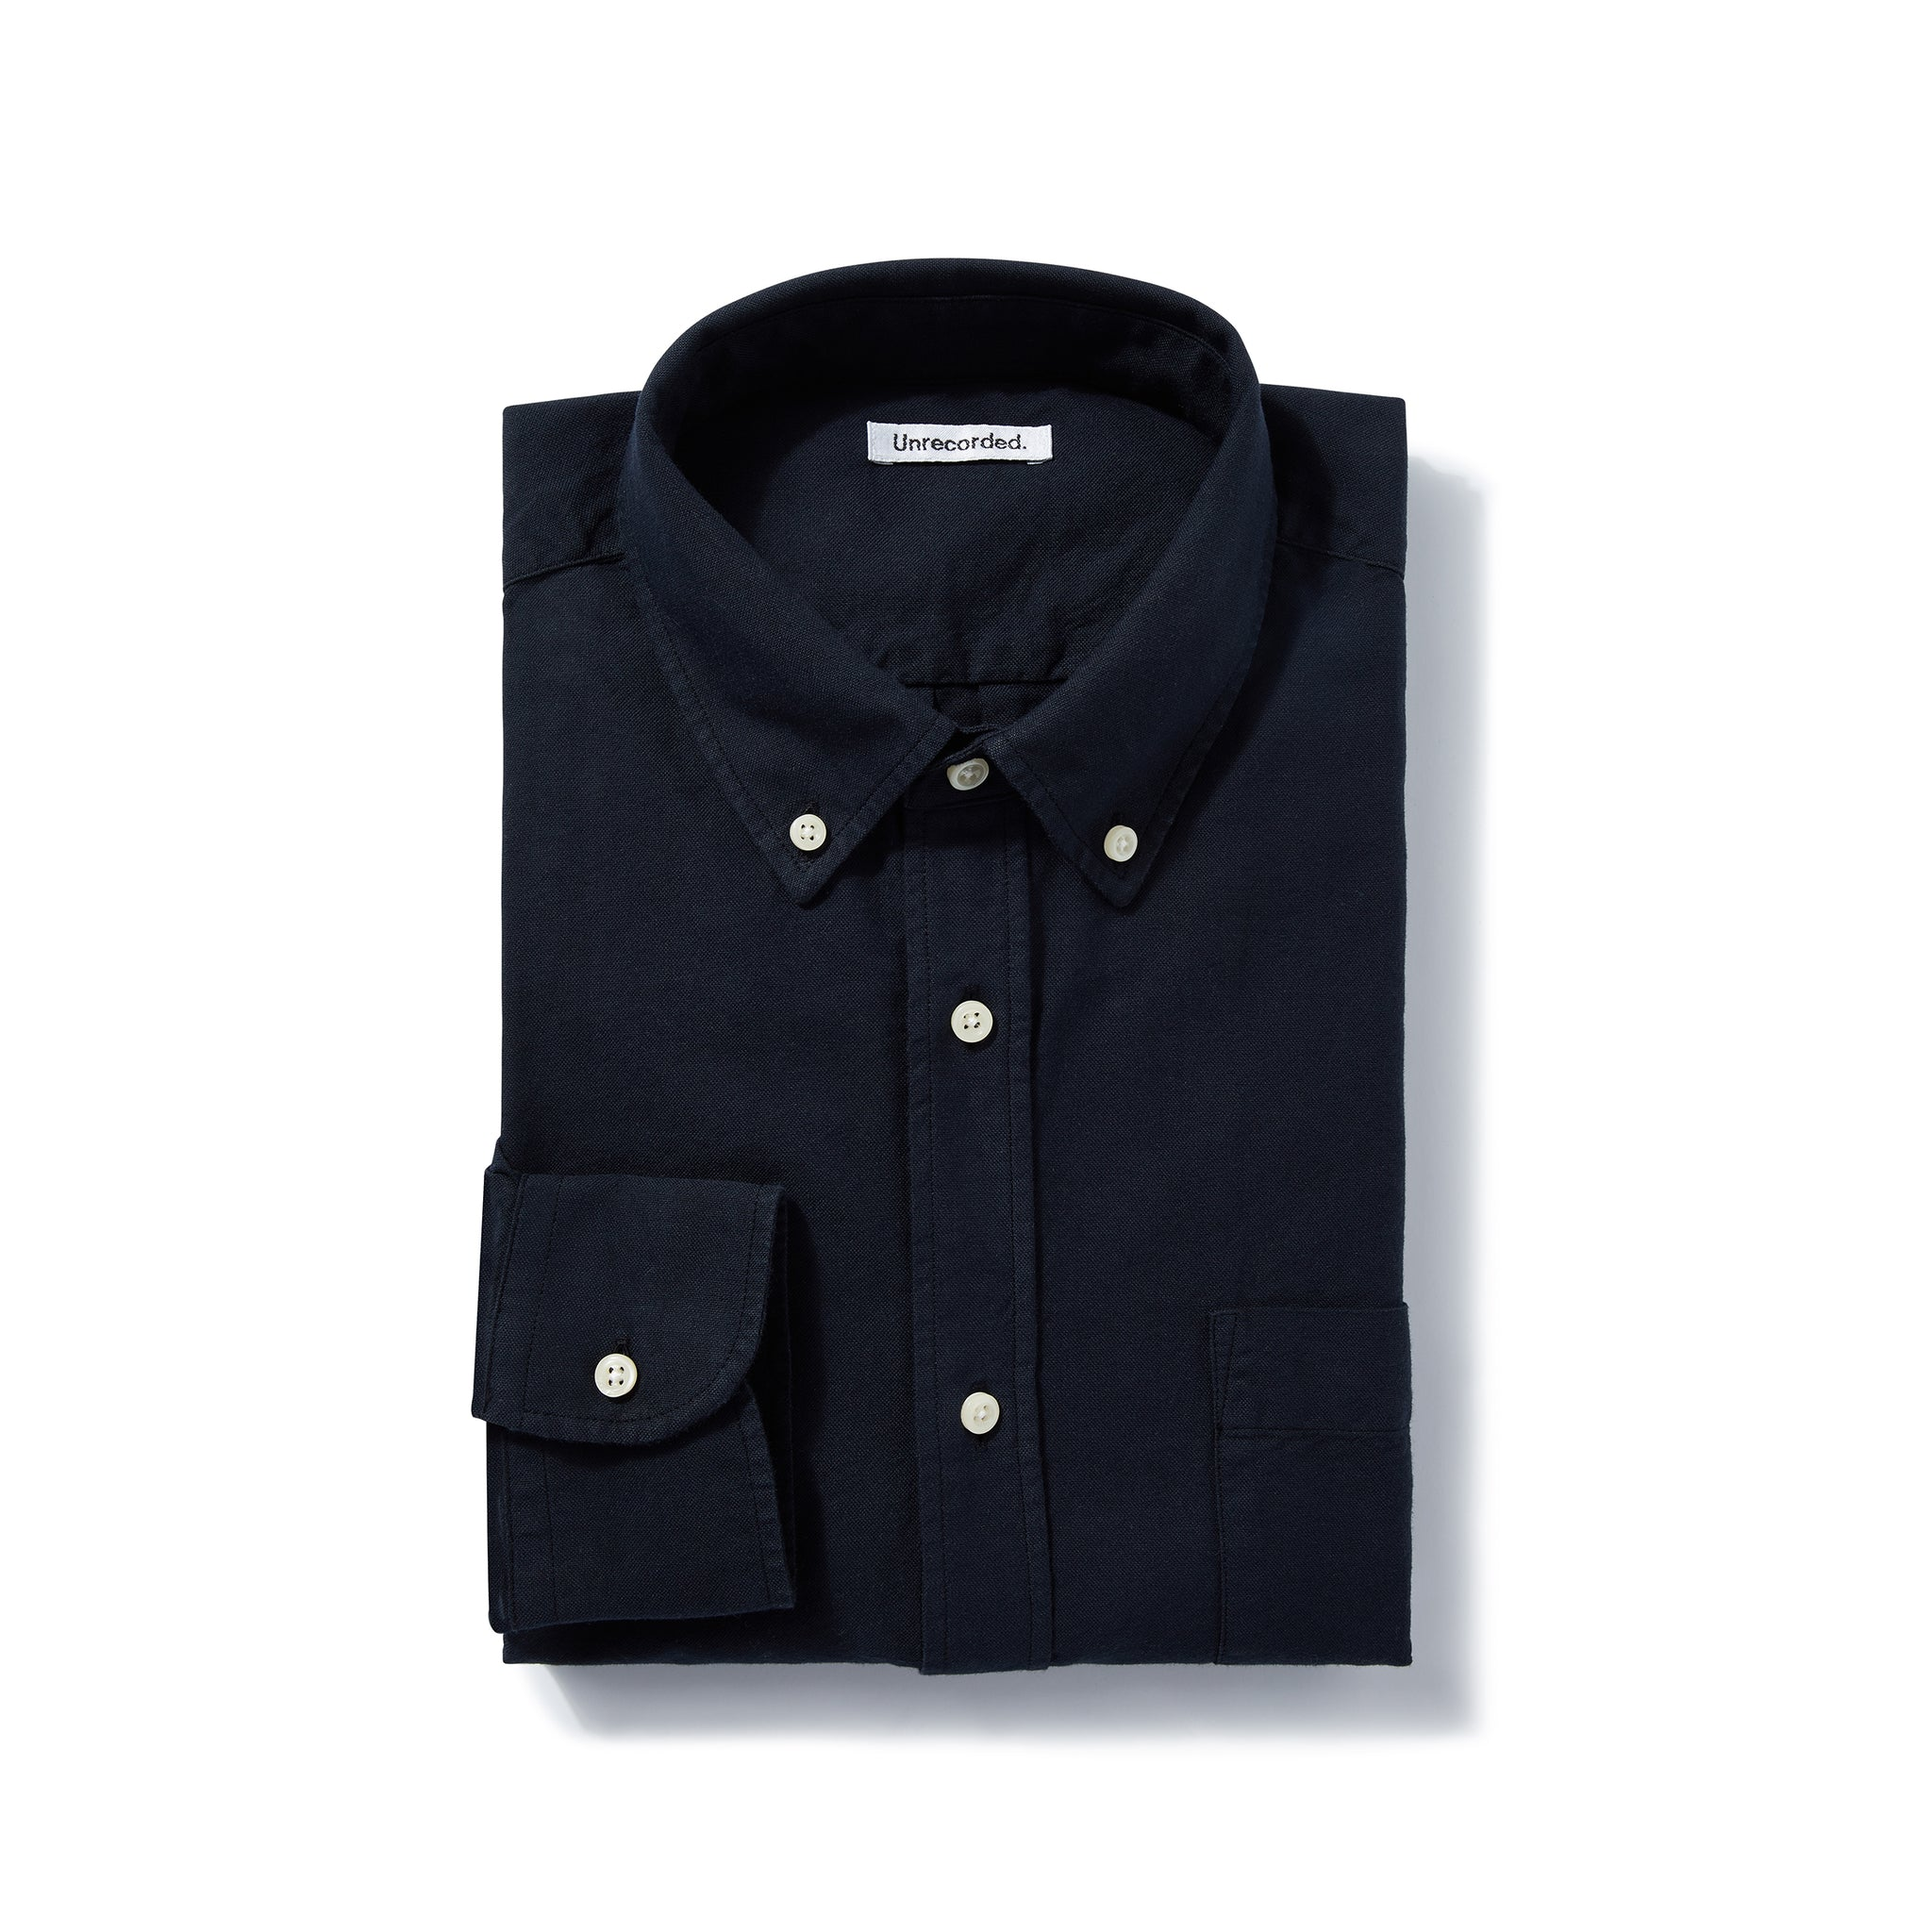 Oxford Shirt in Navy made from Organic Cotton